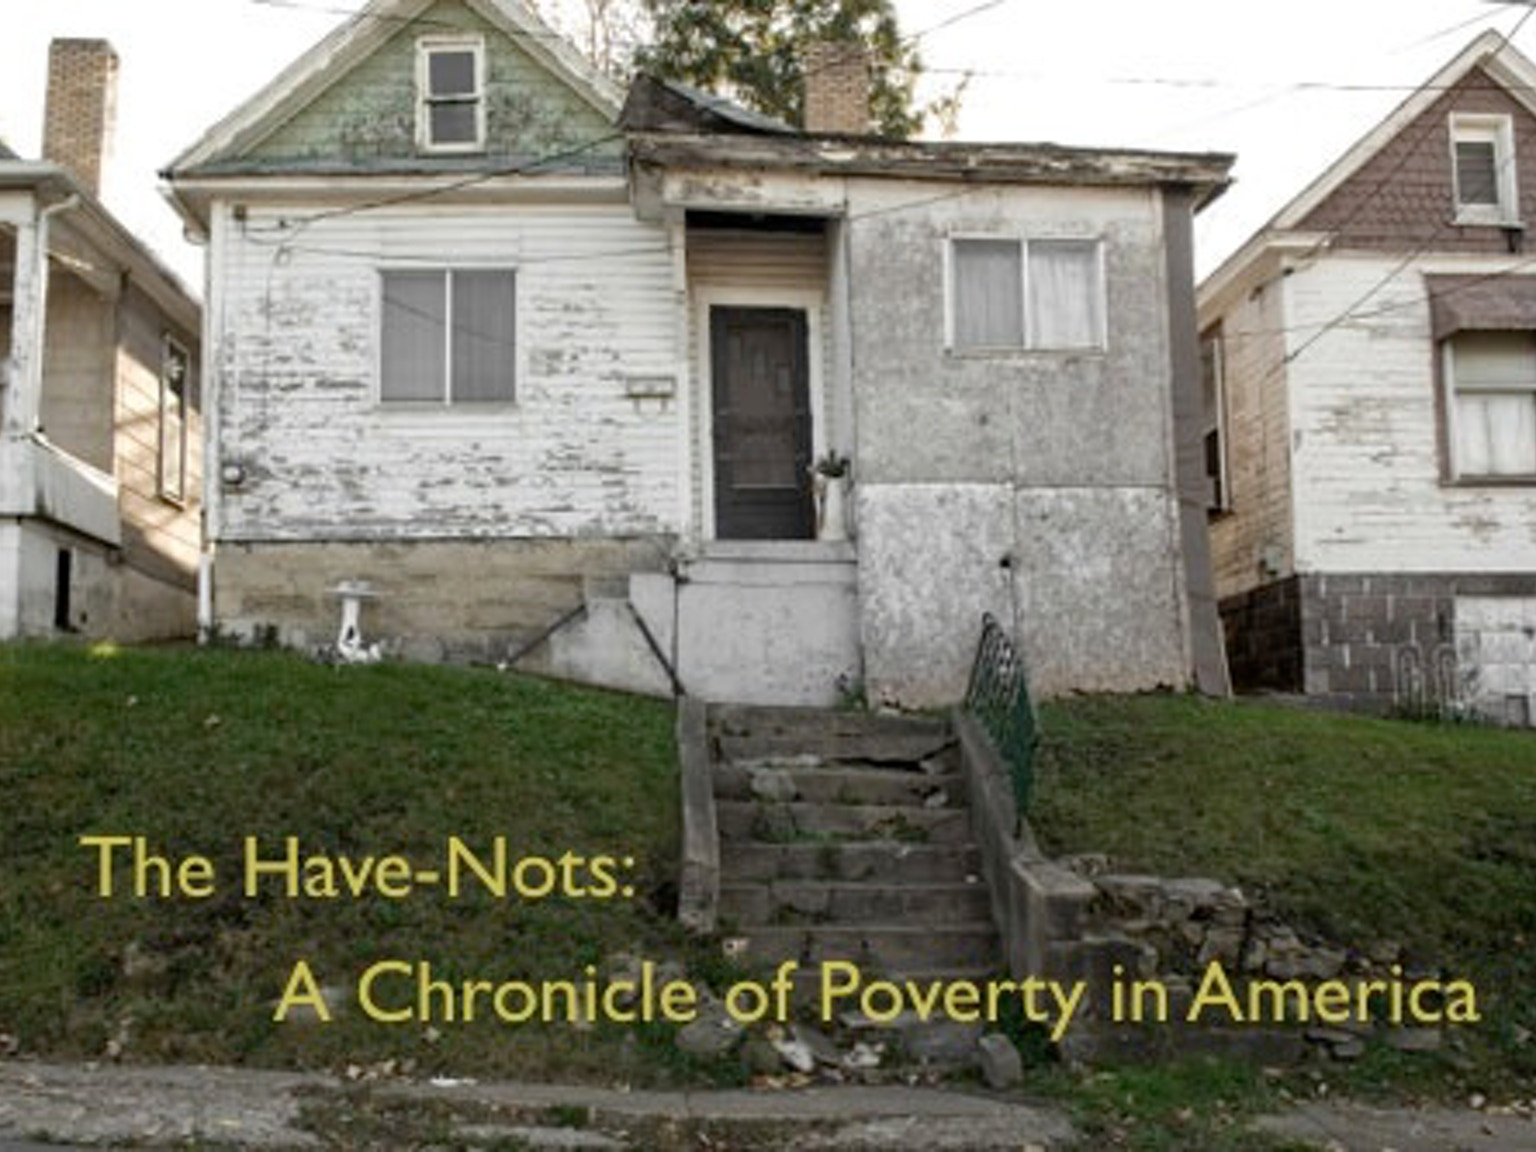 essay on poverty in america research paper on poverty student essay accepted for publication